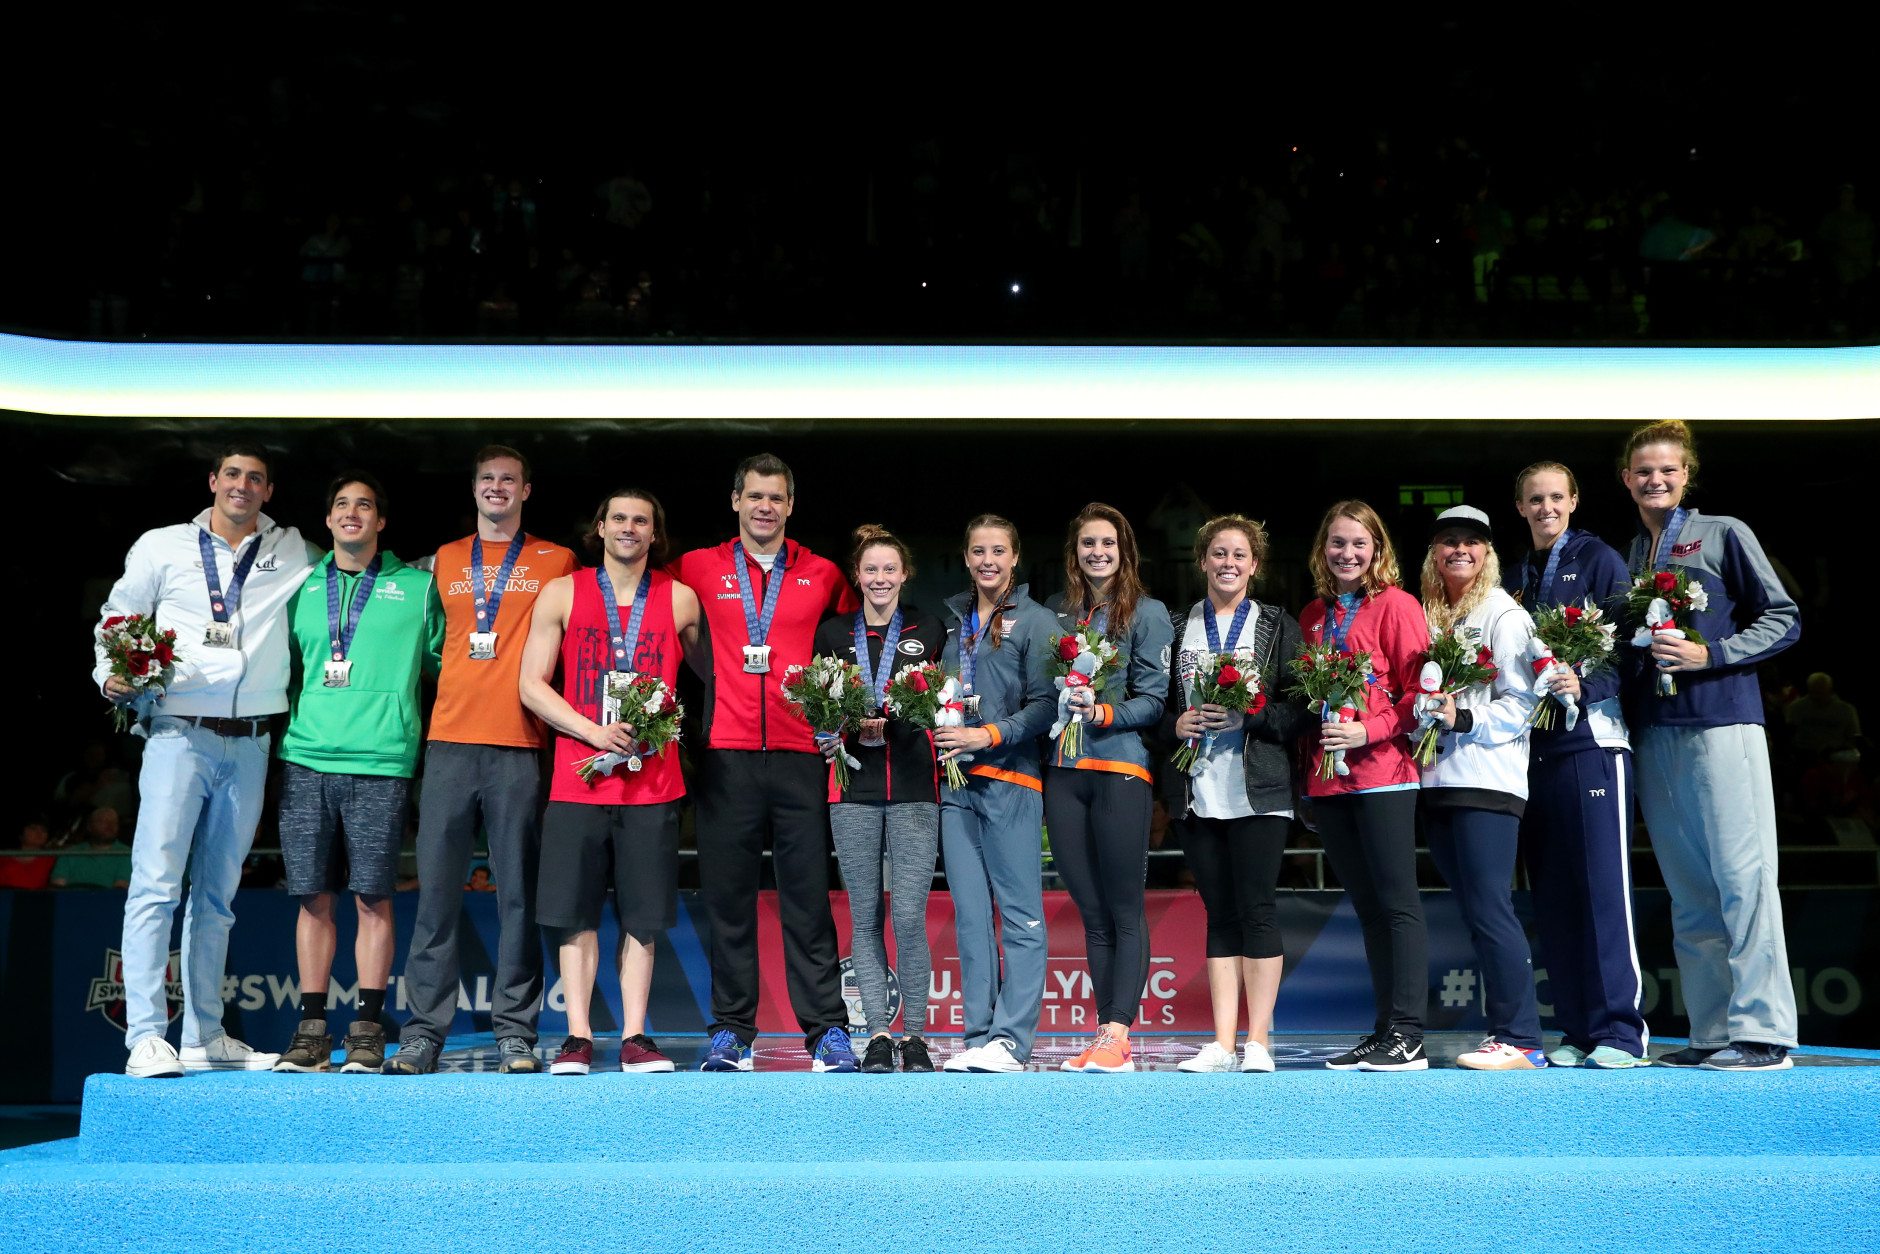 (L-R) Jacob Pebley, Jay Litherland, Jack Conger, Cody Miller, David Plummer, Hali Flickinger, Katie Baker, Katie Meili, Molly Hannis, Melanie Margalis, Elizabeth Beisel, Dana Vollmer and Sierra Ranger of the United States participate in the medal ceremony for the Olympic Team Qualifiers during Day Seven of the 2016 U.S. Olympic Team Swimming Trials at CenturyLink Center on July 2, 2016 in Omaha, Nebraska.  (Photo by Tom Pennington/Getty Images)